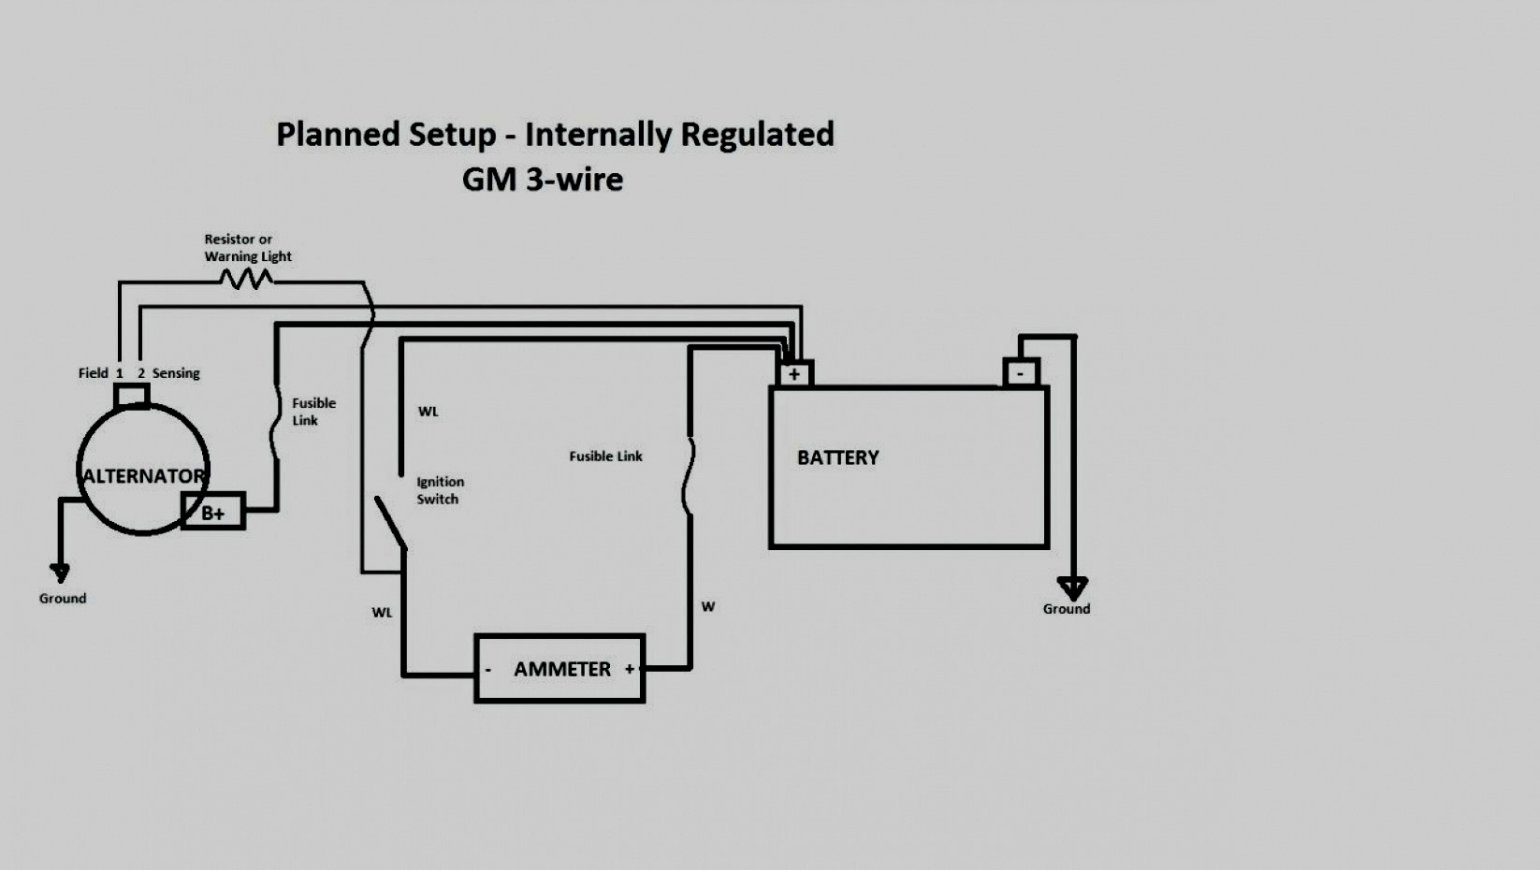 Gm 3 1 Wiring | Wiring Diagram - Gm 3 Wire Alternator Wiring Diagram